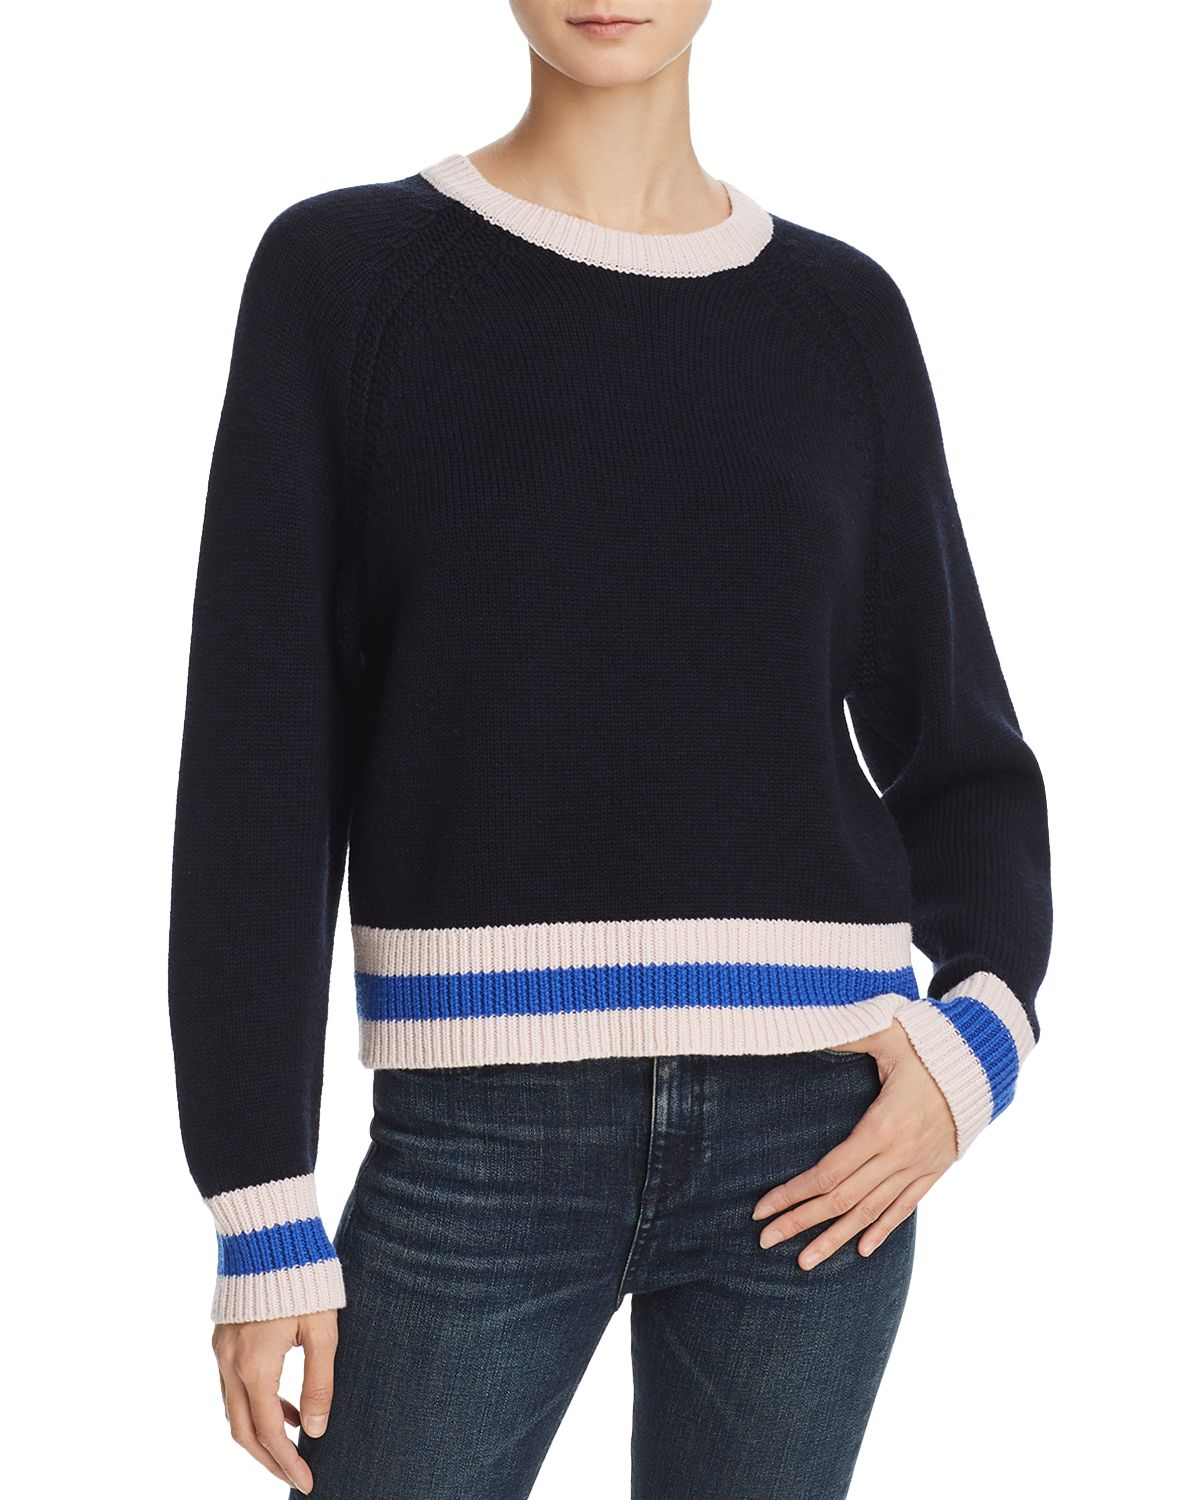 Color Block Sweater by Rag & Bone/Jean